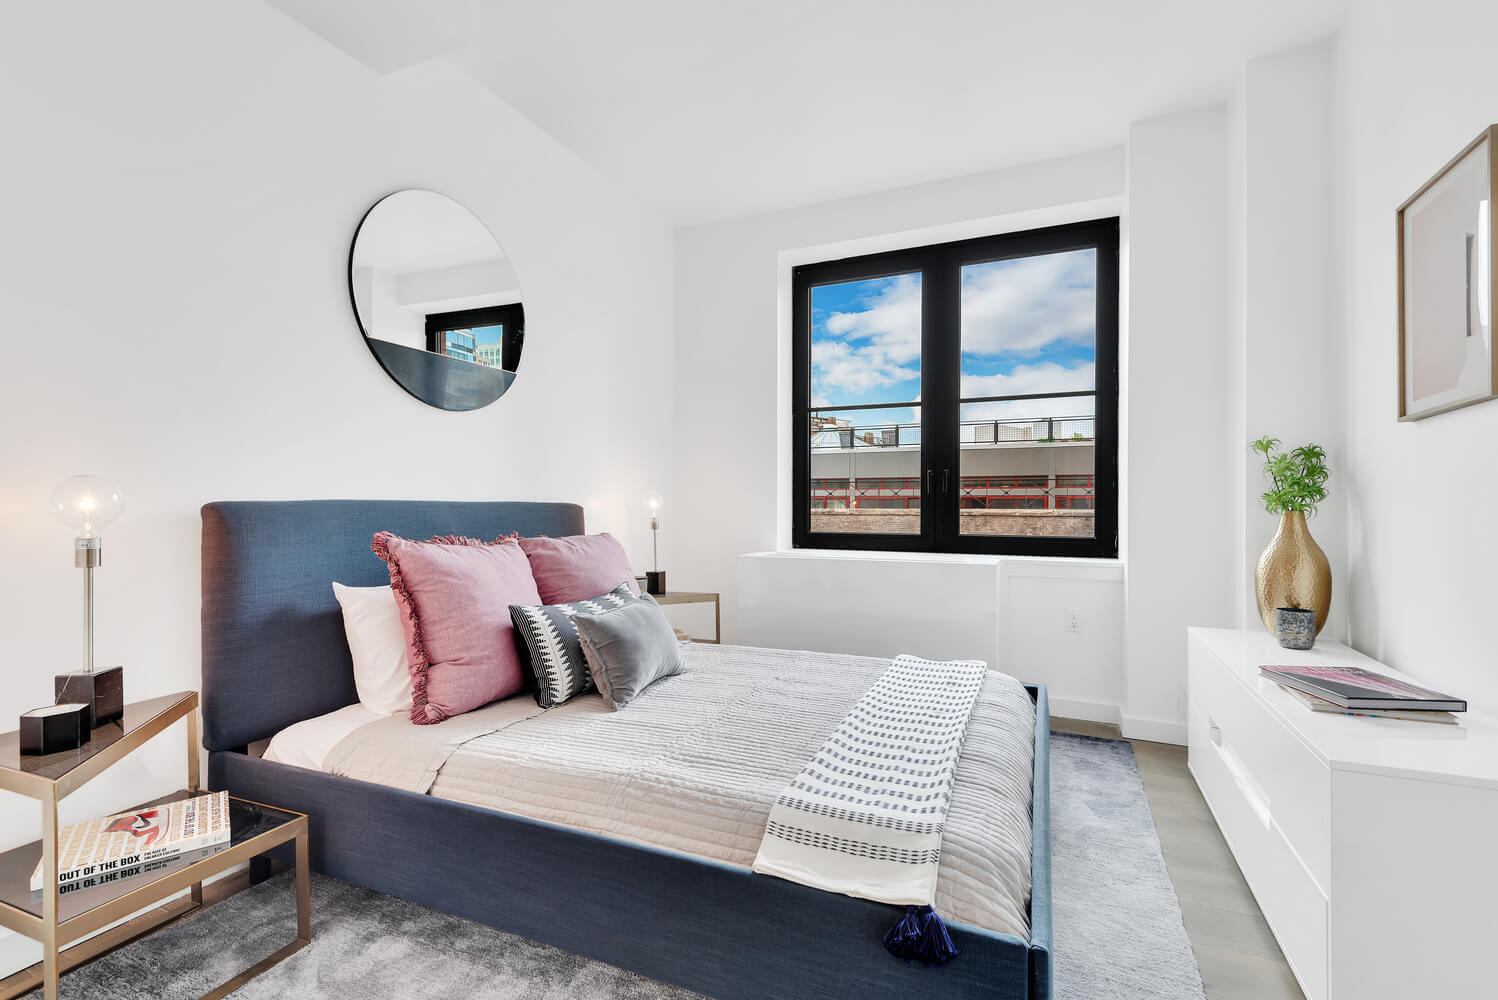 Brooklyn apartments for rent in downtown Brooklyn